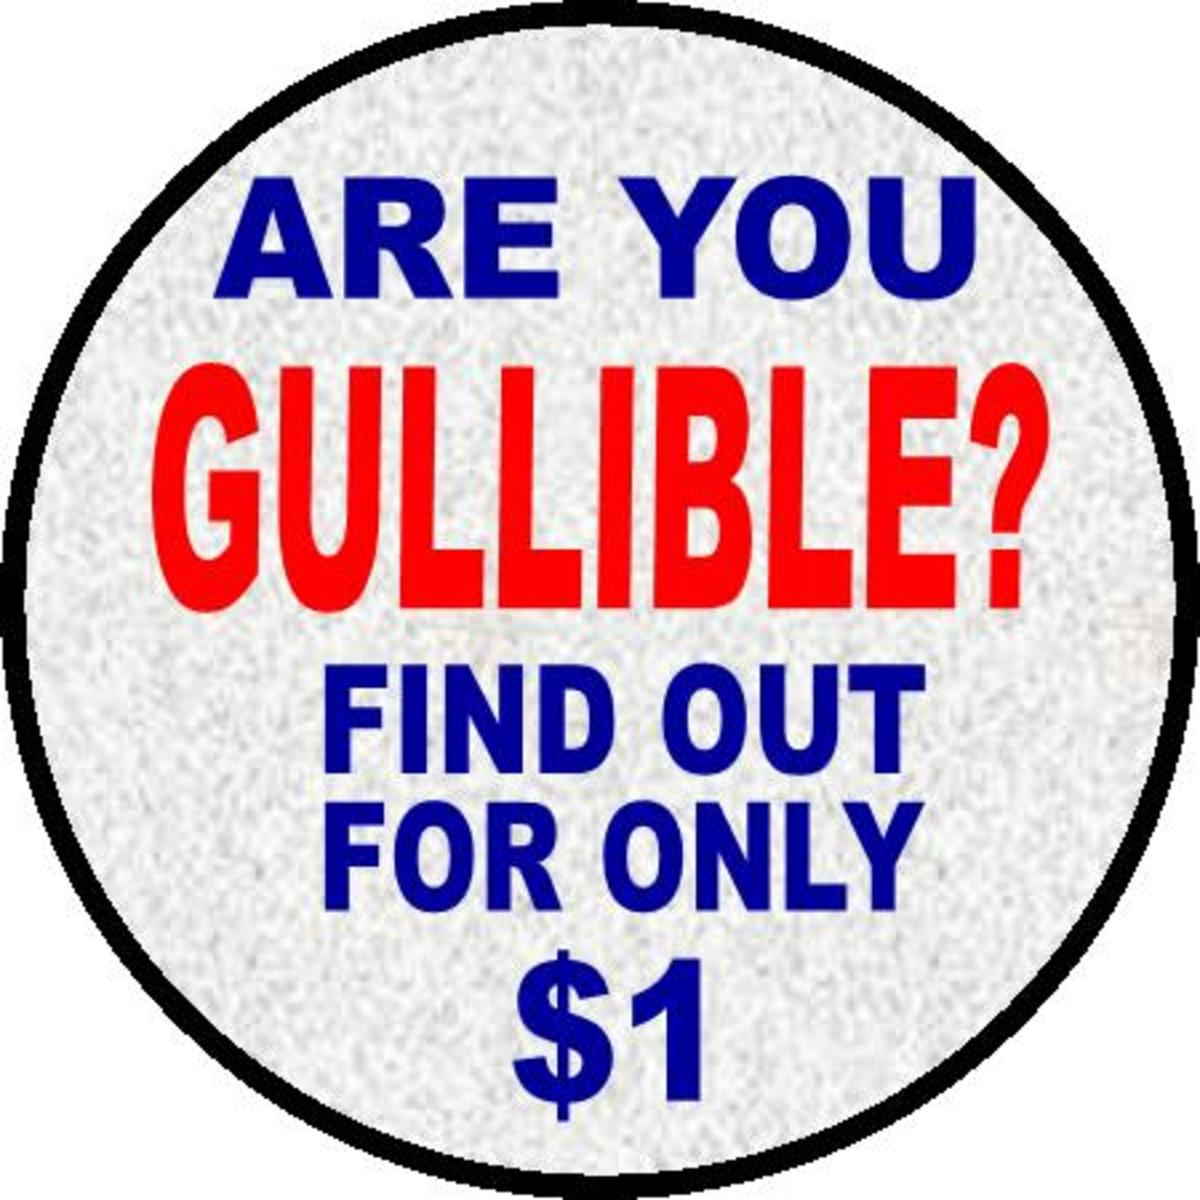 Are you gullible? Find out for only $1!  (No, just kidding, I don't need your money)